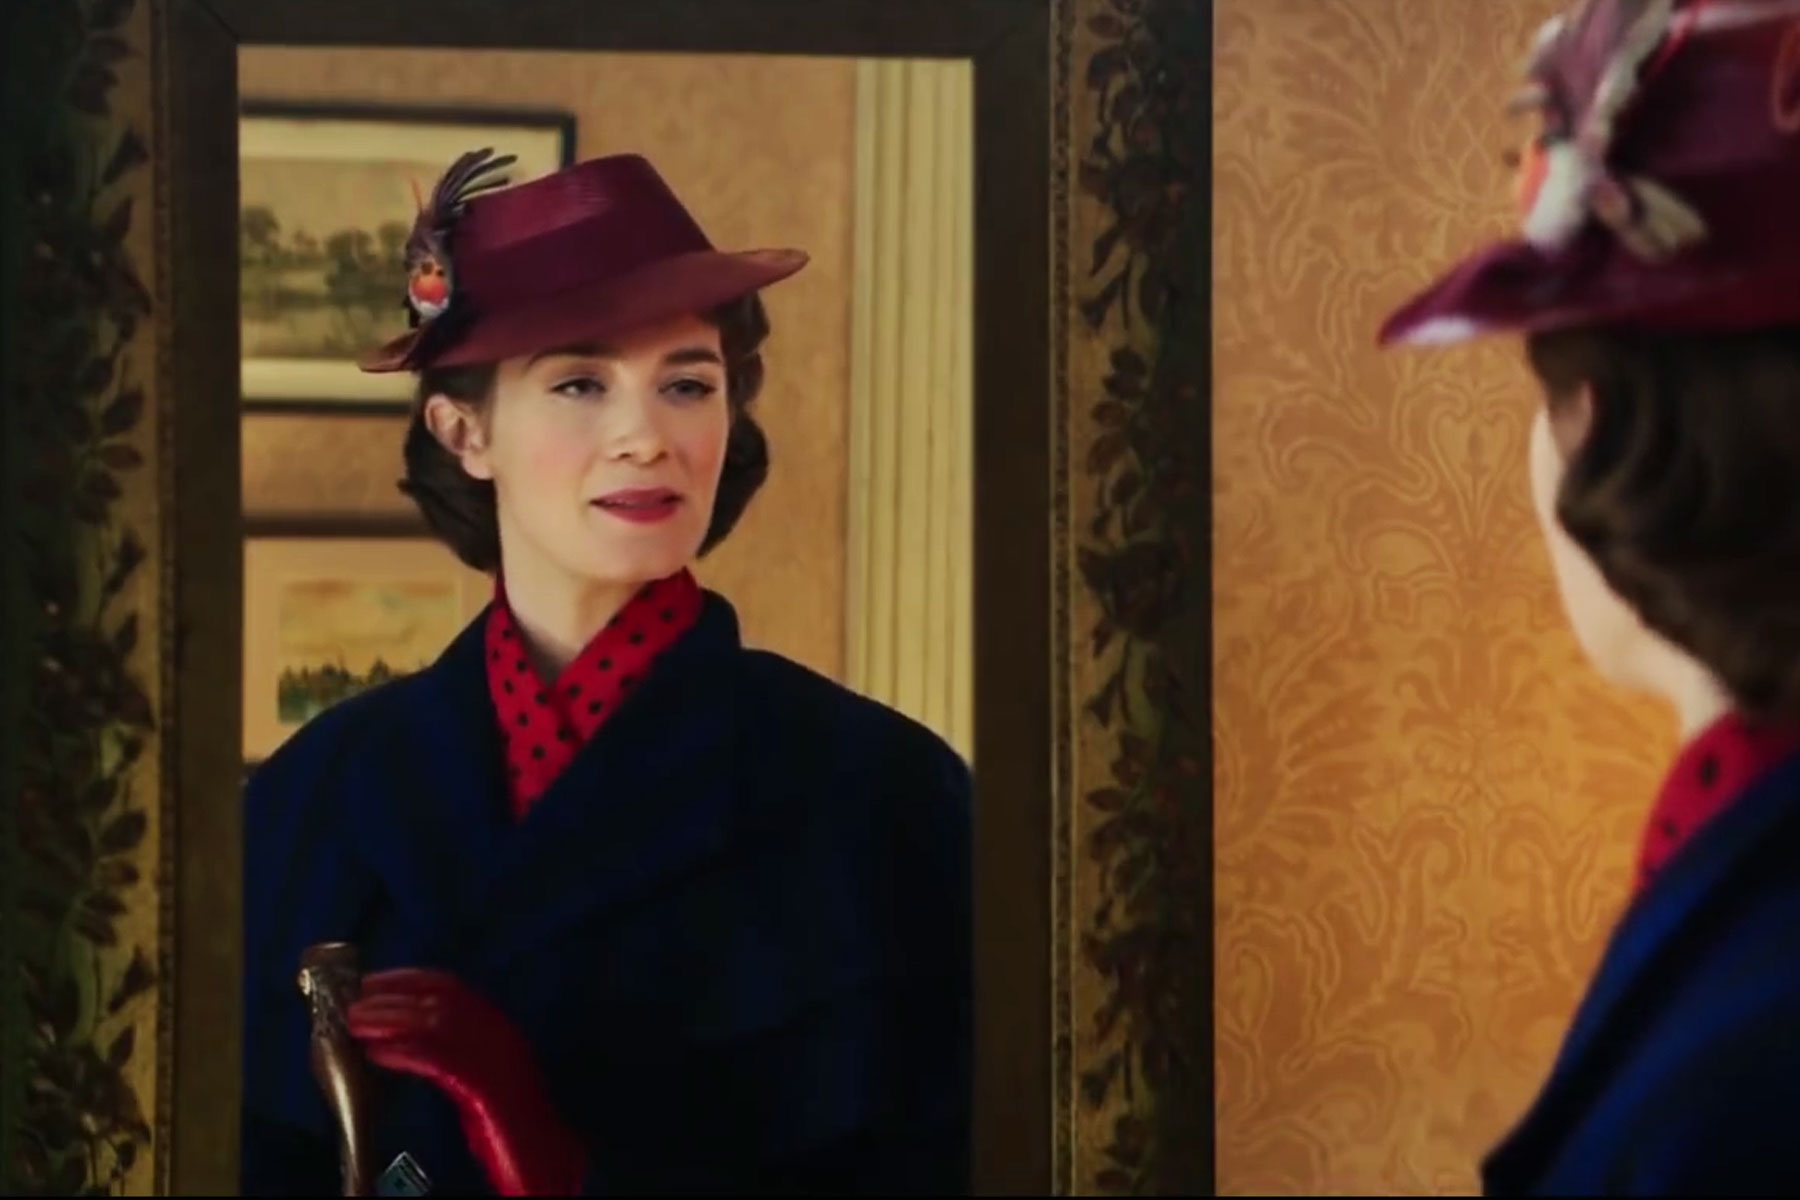 Jane from the movie Mary Poppins, goodbye became a producer 07/31/2011 65